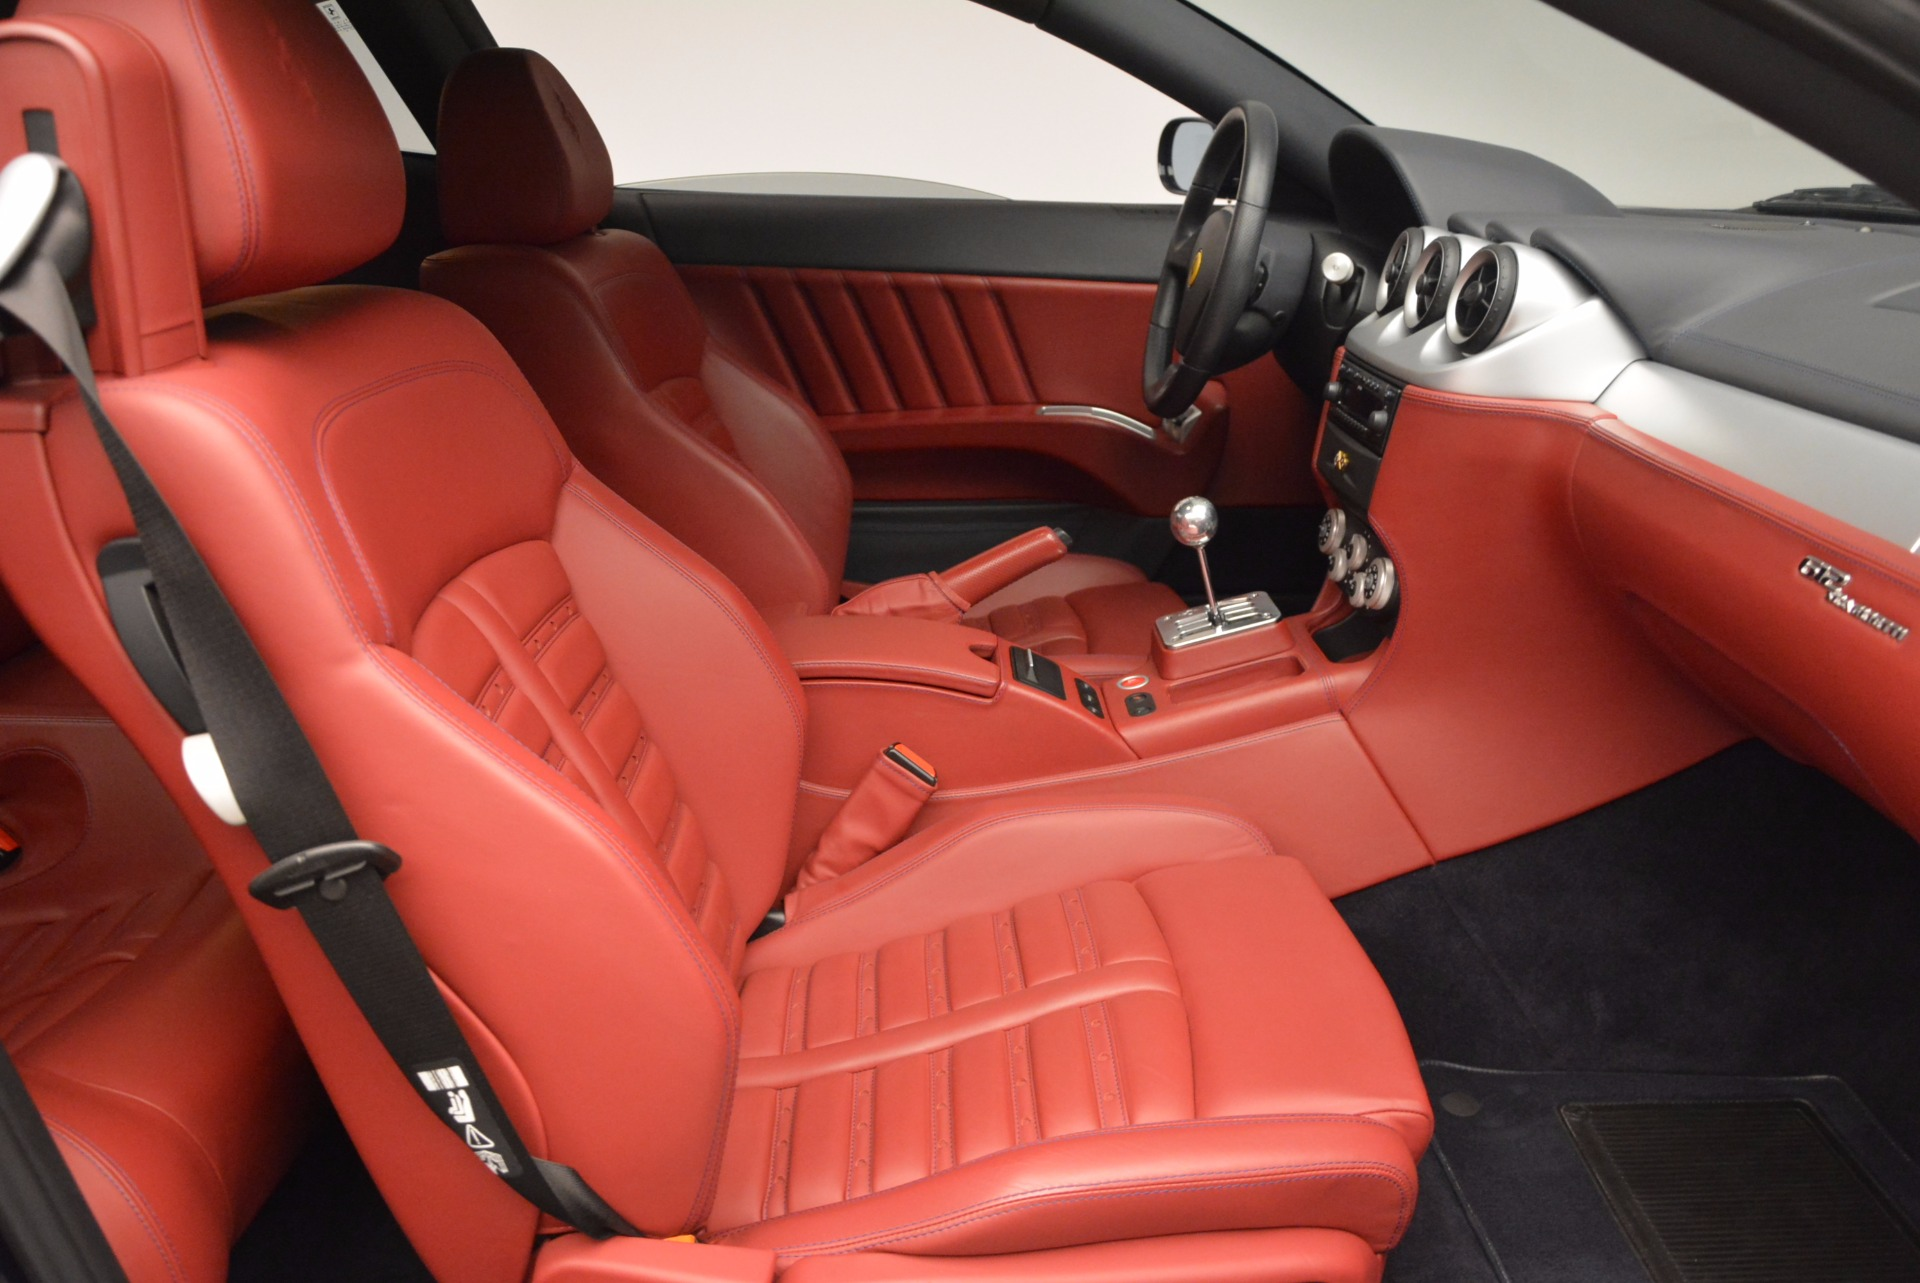 Used 2005 Ferrari 612 Scaglietti 6-Speed Manual For Sale In Greenwich, CT 854_p19